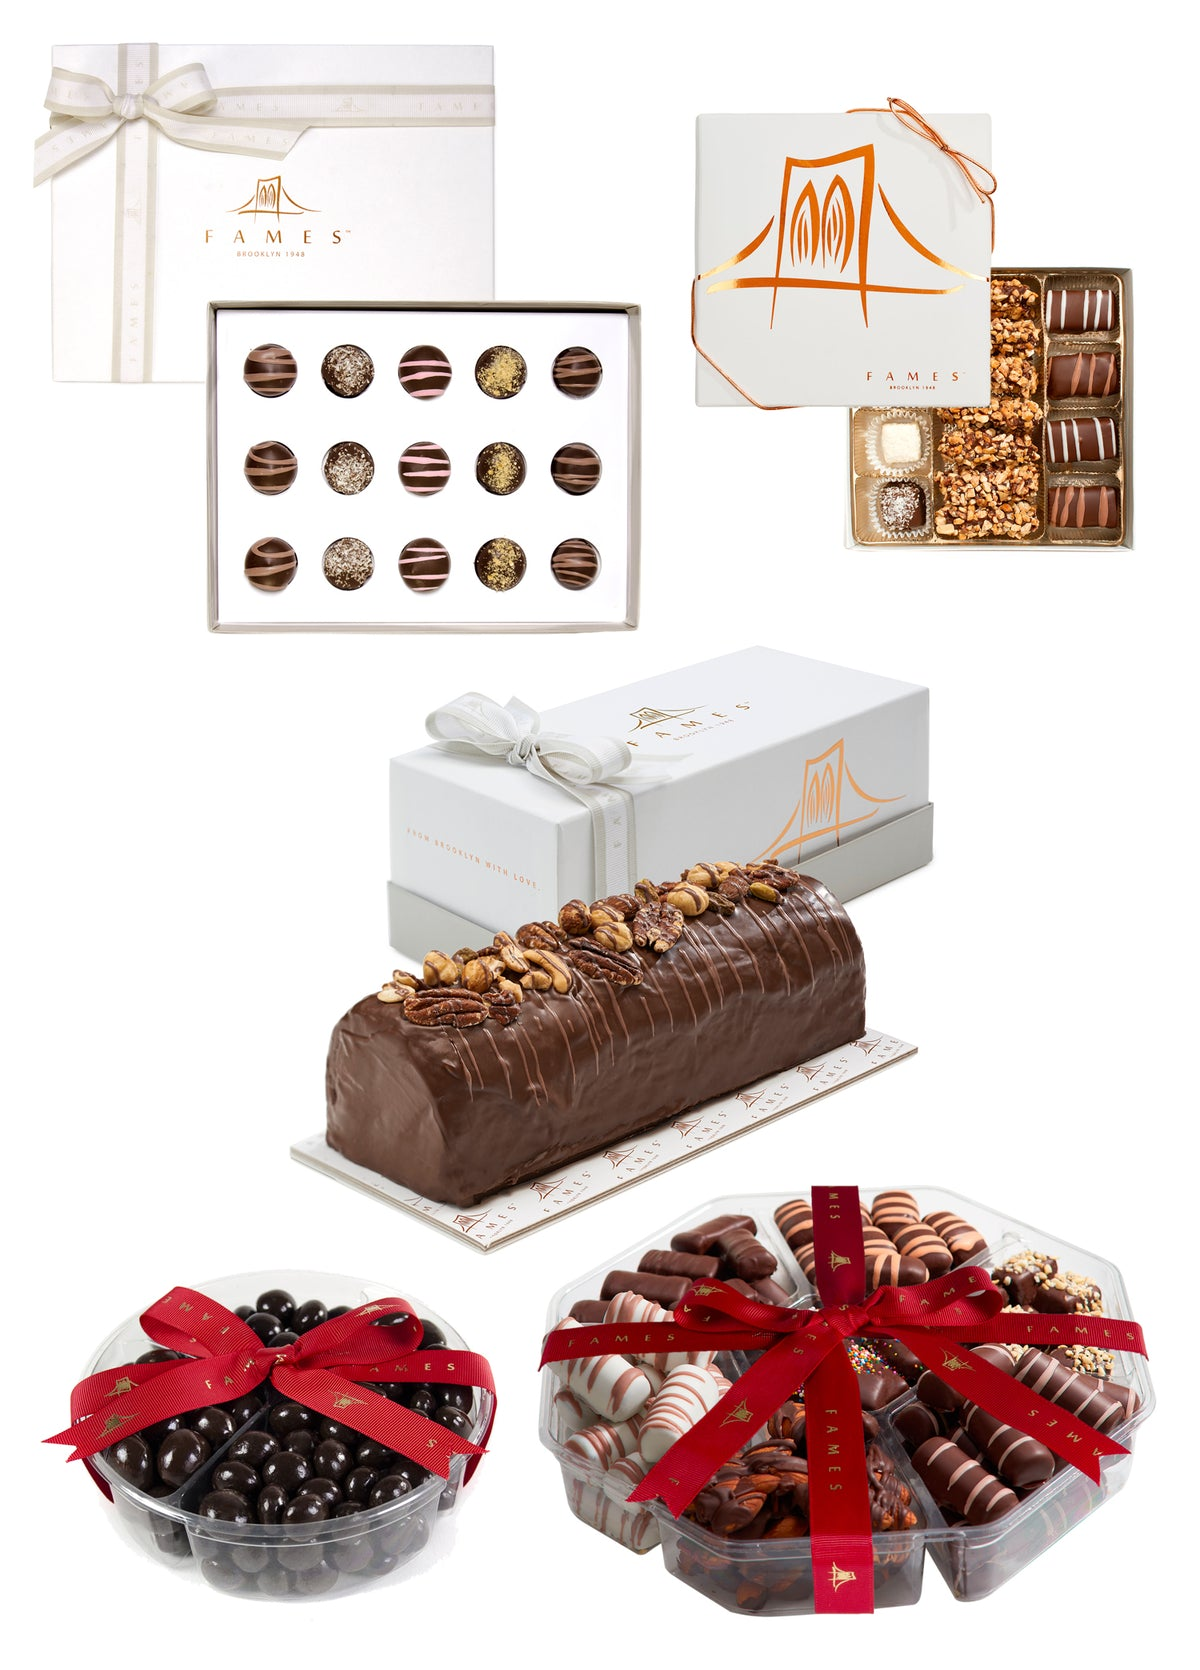 Holiday Chocolate Gift set for Families, Holiday Celebration with Festive Holiday Treats.